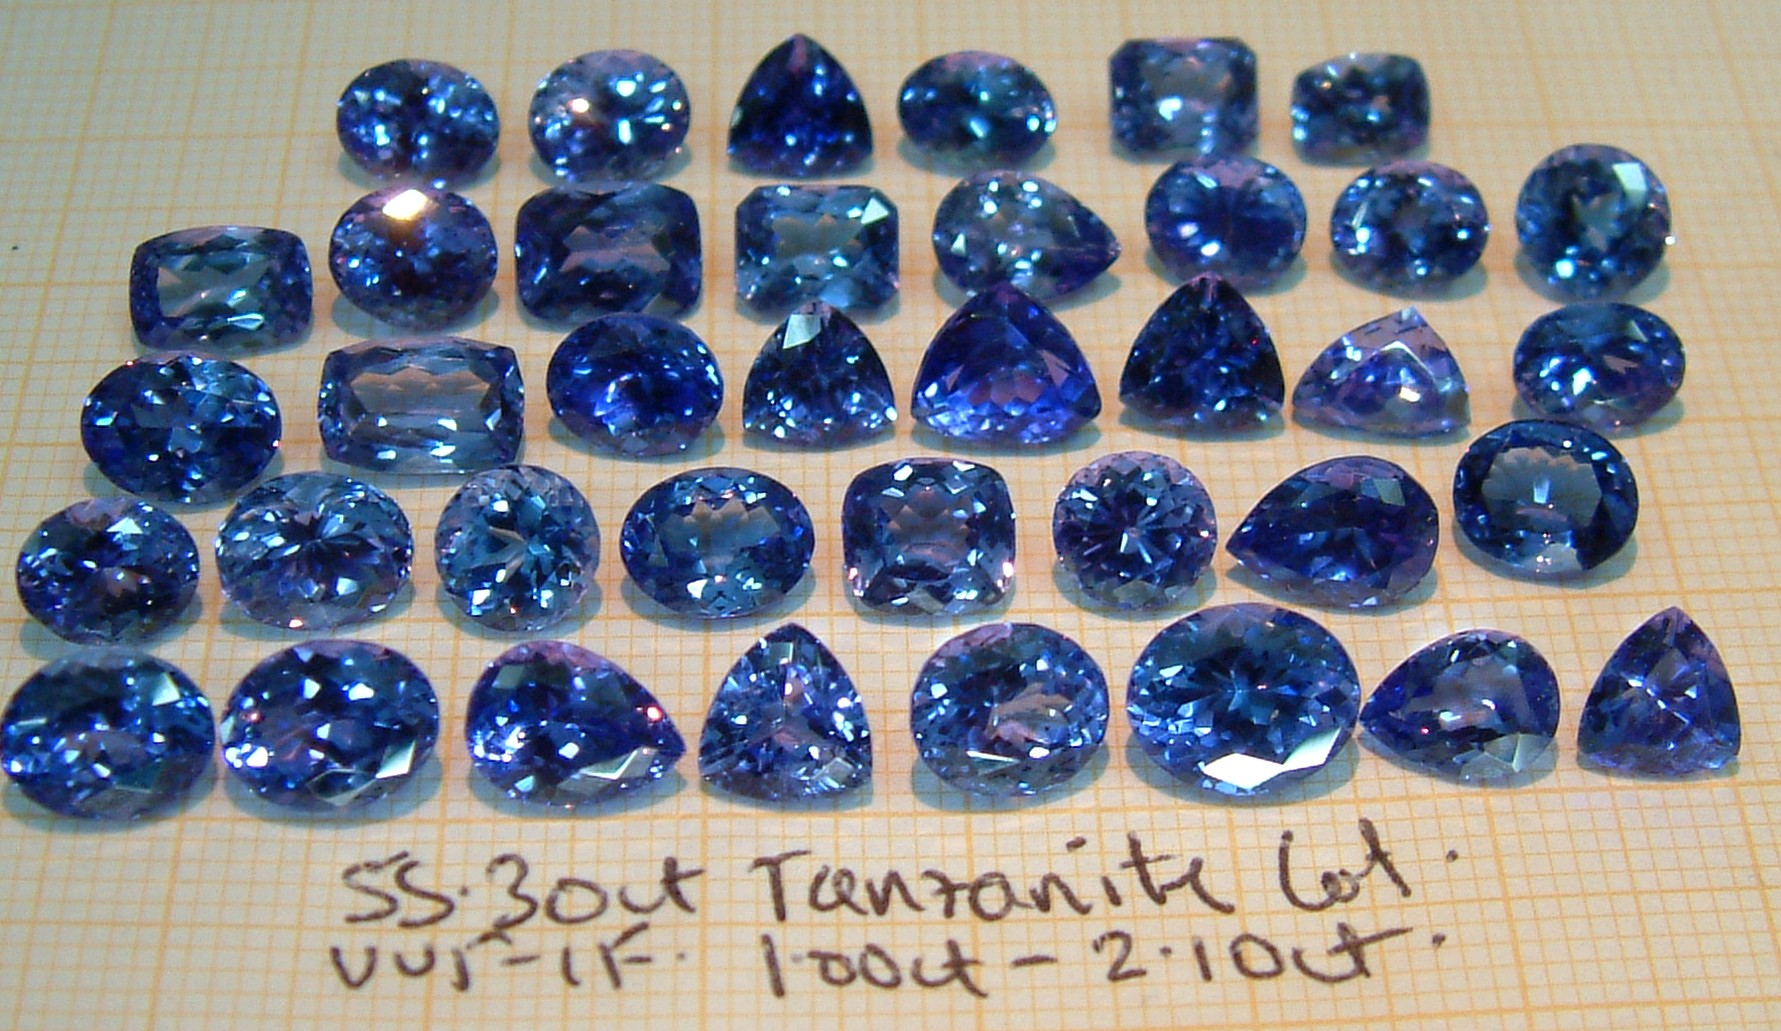 Wholesale Suppliers In Tanzania Tanzanites Tanzanite Gemstones From Tanzania Gem Dealers